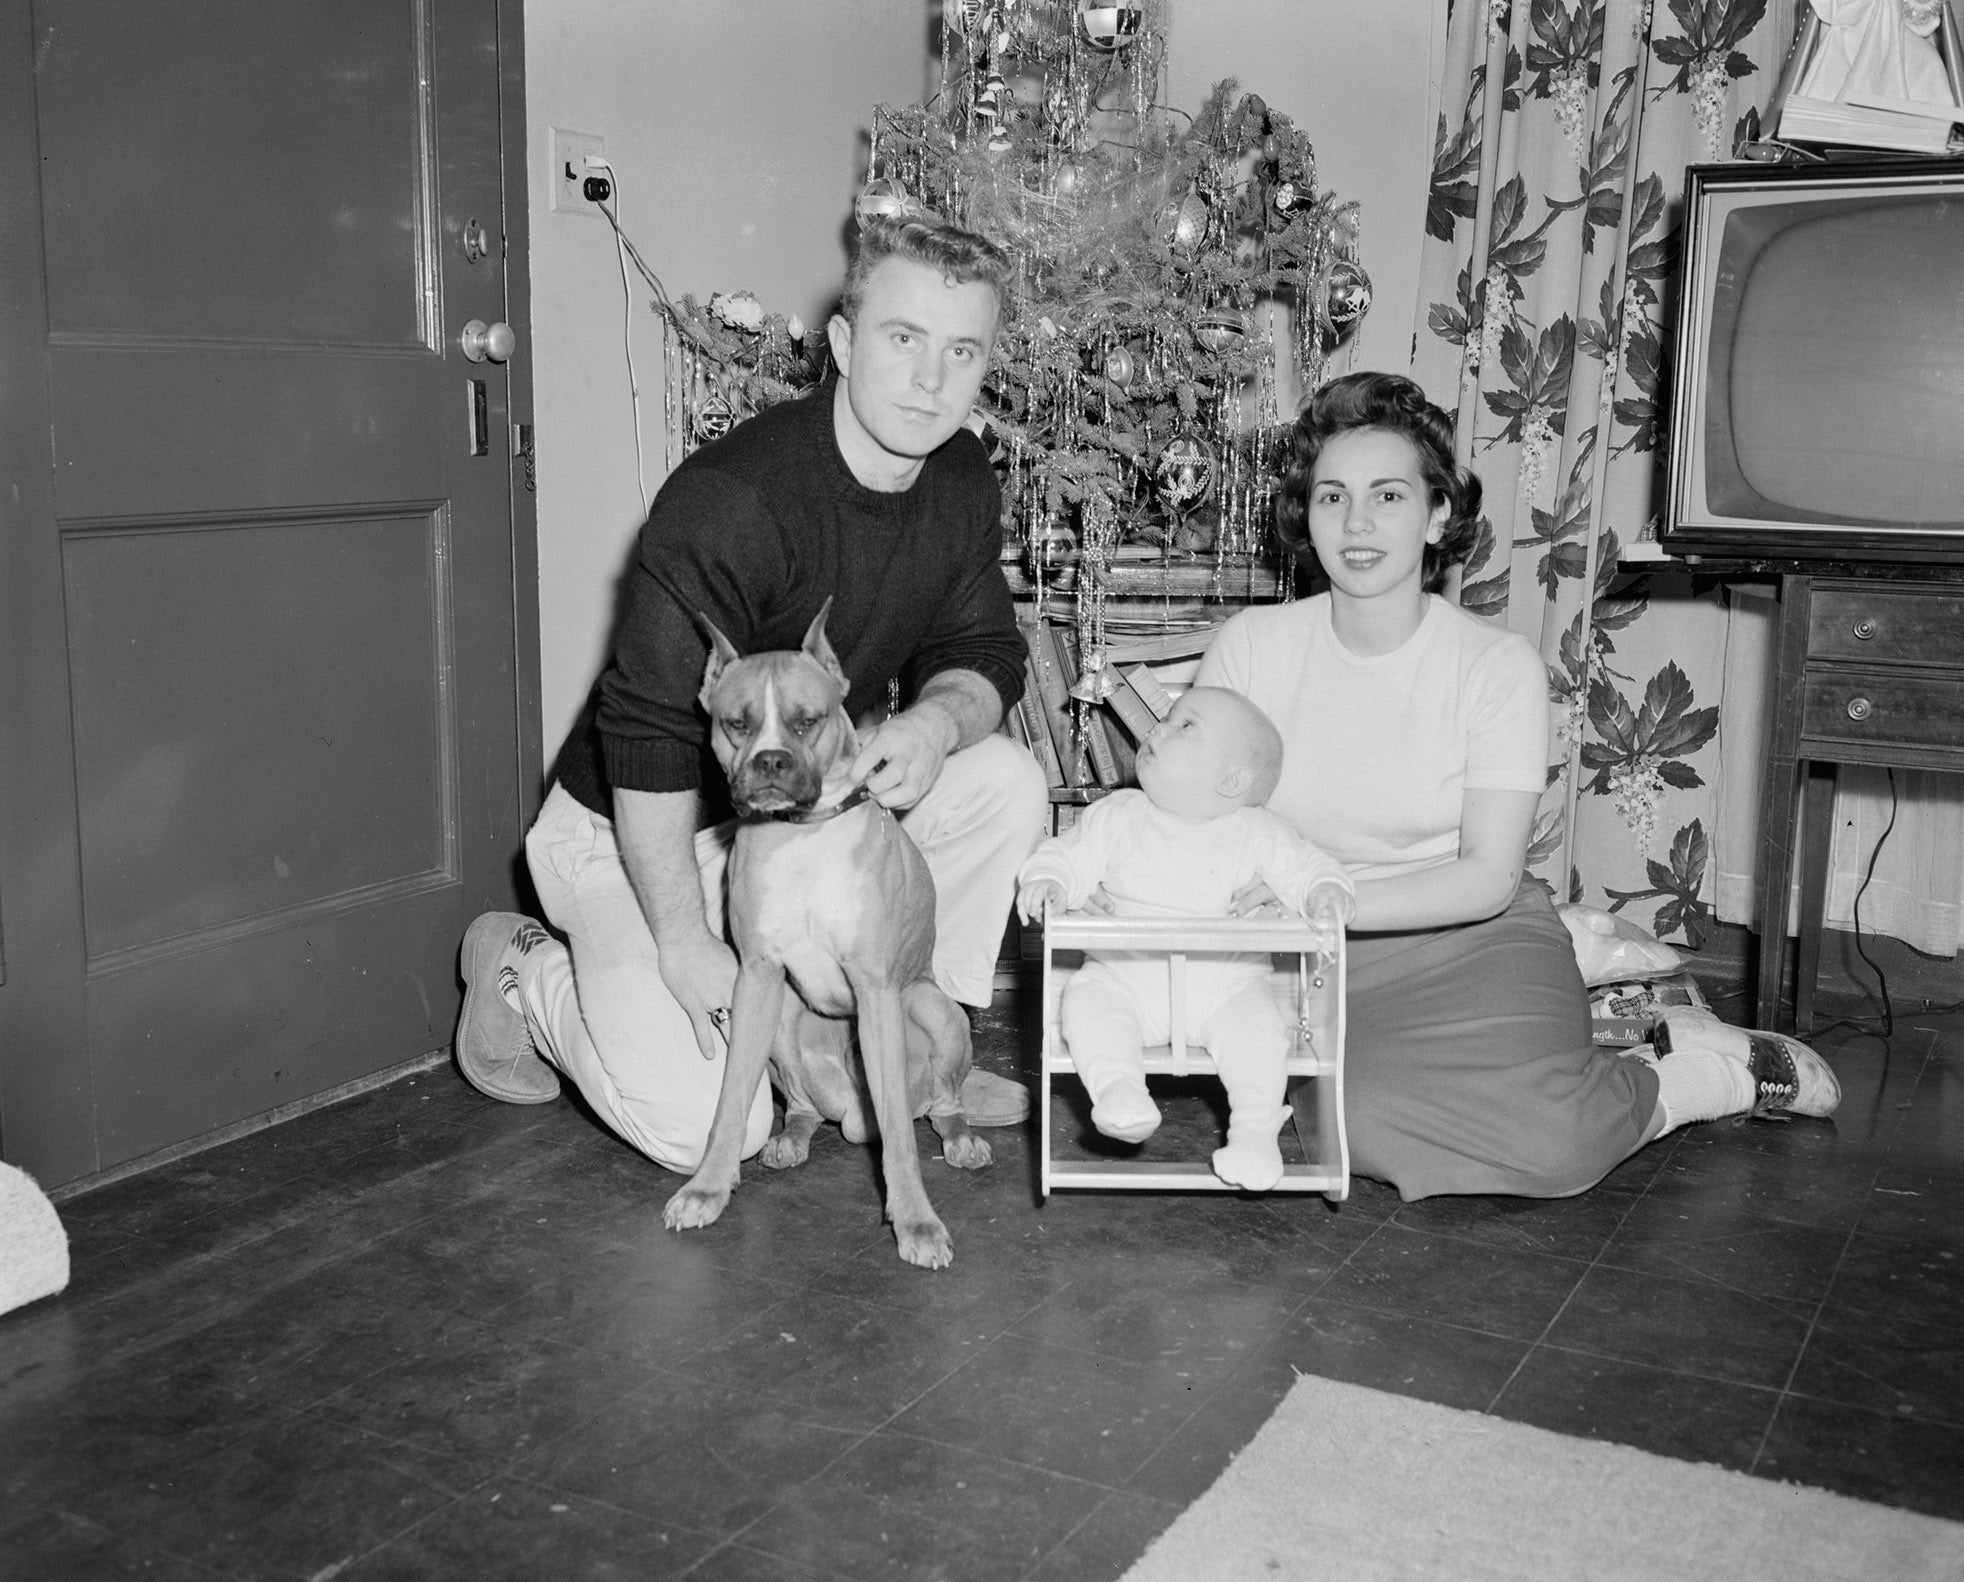 A vintage family portrait of a man and his wife, a newborn baby, and a dog.